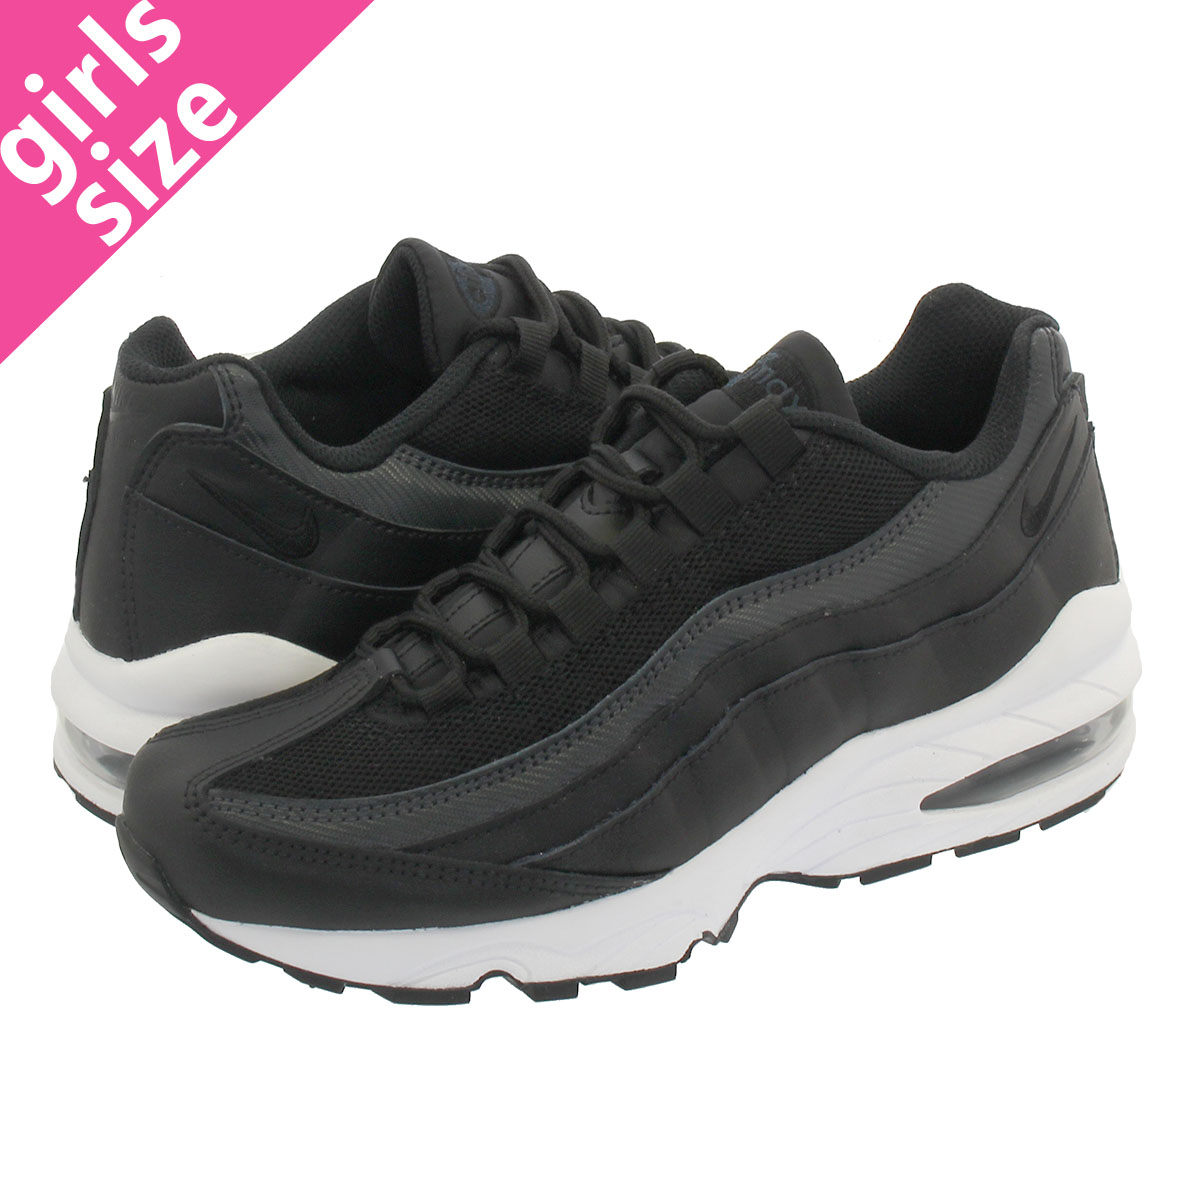 classic fit 1aae1 6399e NIKE AIR MAX 95 EP GS Kie Ney AMAX 95 EP GS BLACK/BLACK/ANTHRACITE/WHITE  bv0041-001